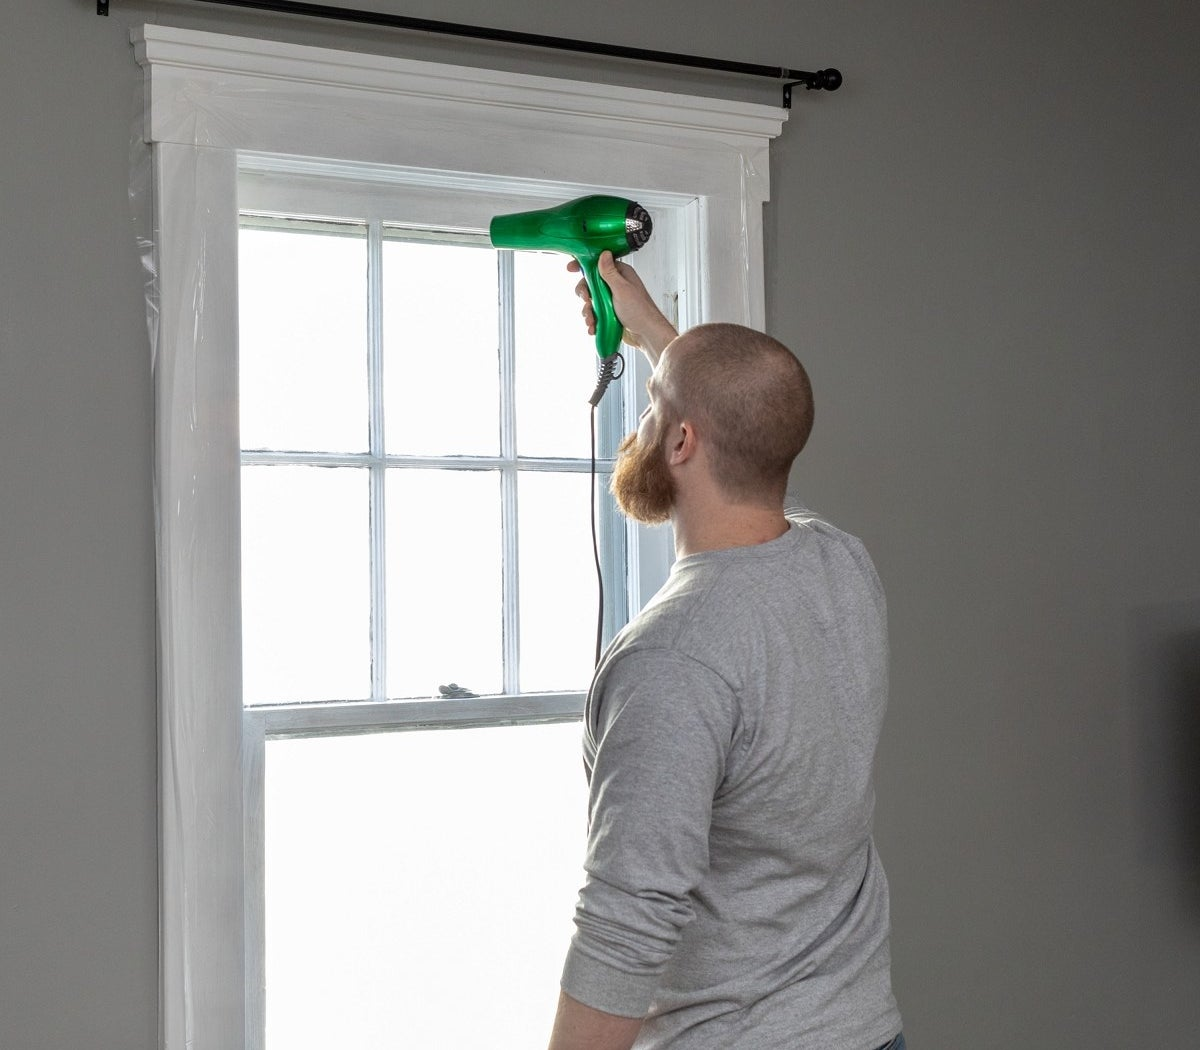 A man installing the window insulation